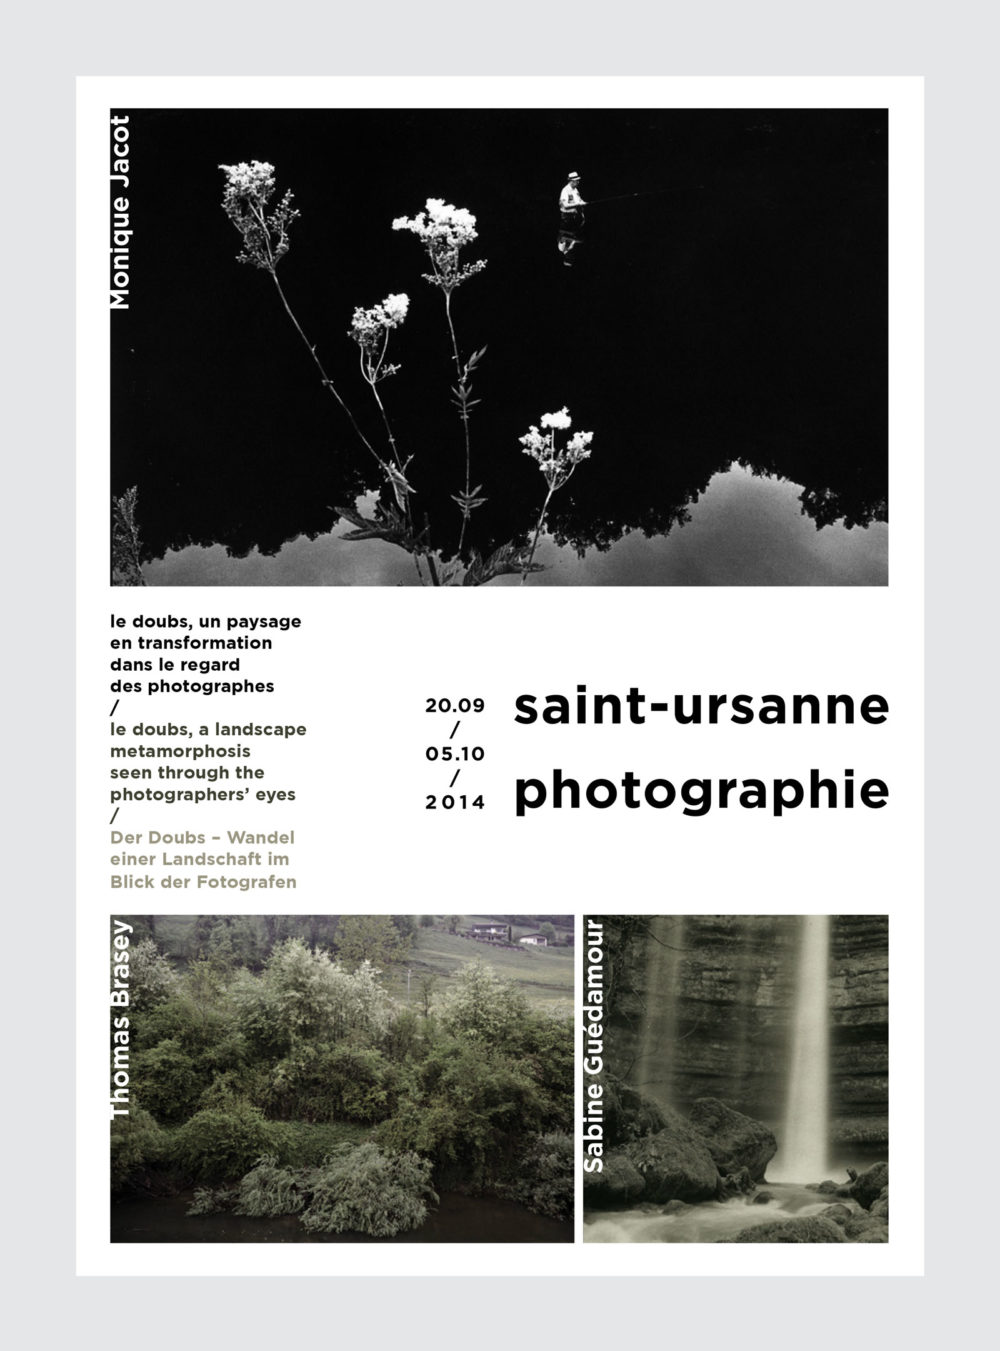 Saint-Ursanne photographieaffiche